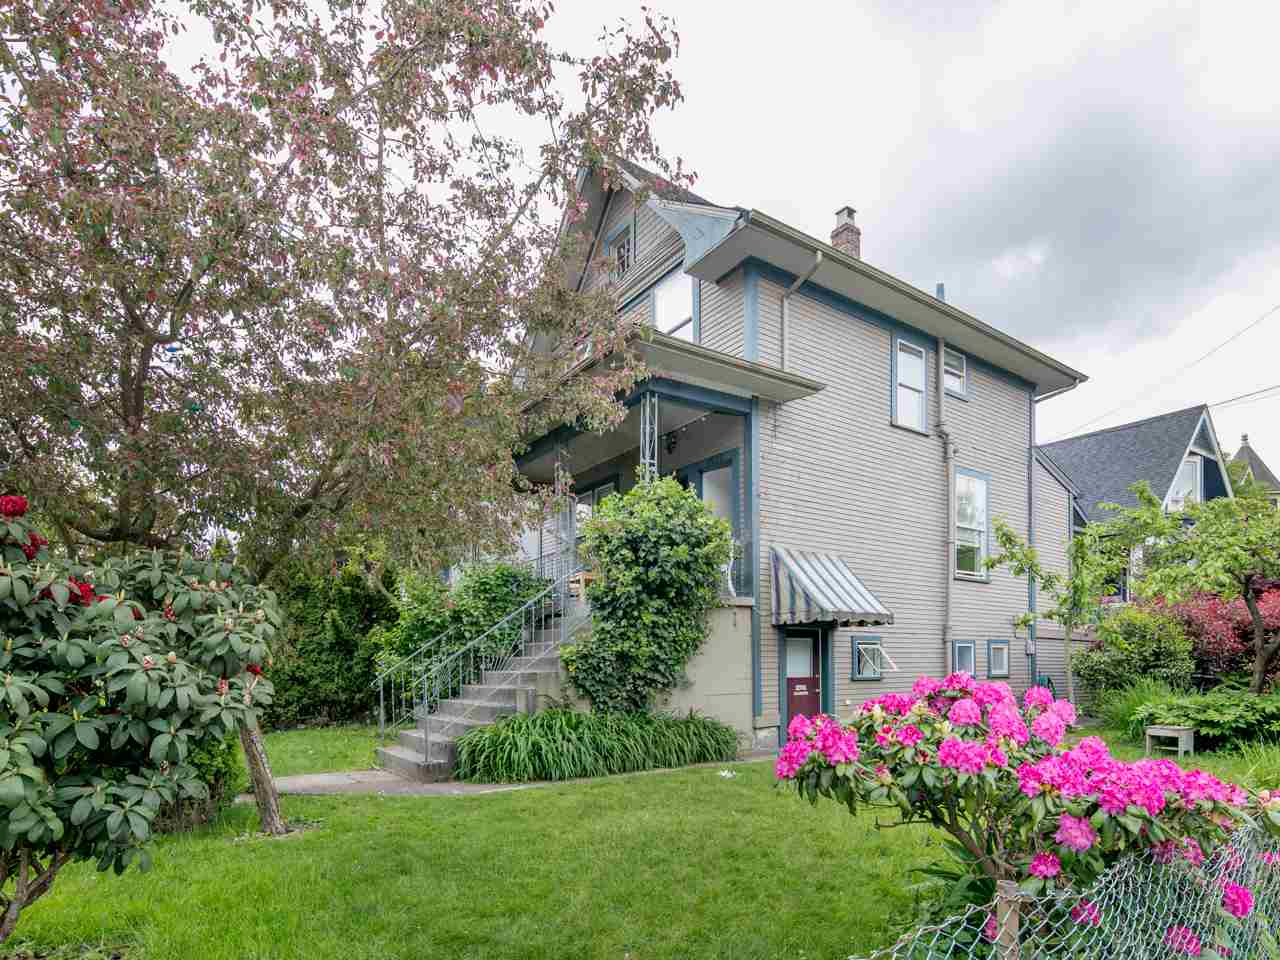 Main Photo: 1505 SALSBURY Drive in Vancouver: Grandview VE House for sale (Vancouver East)  : MLS® # R2179781